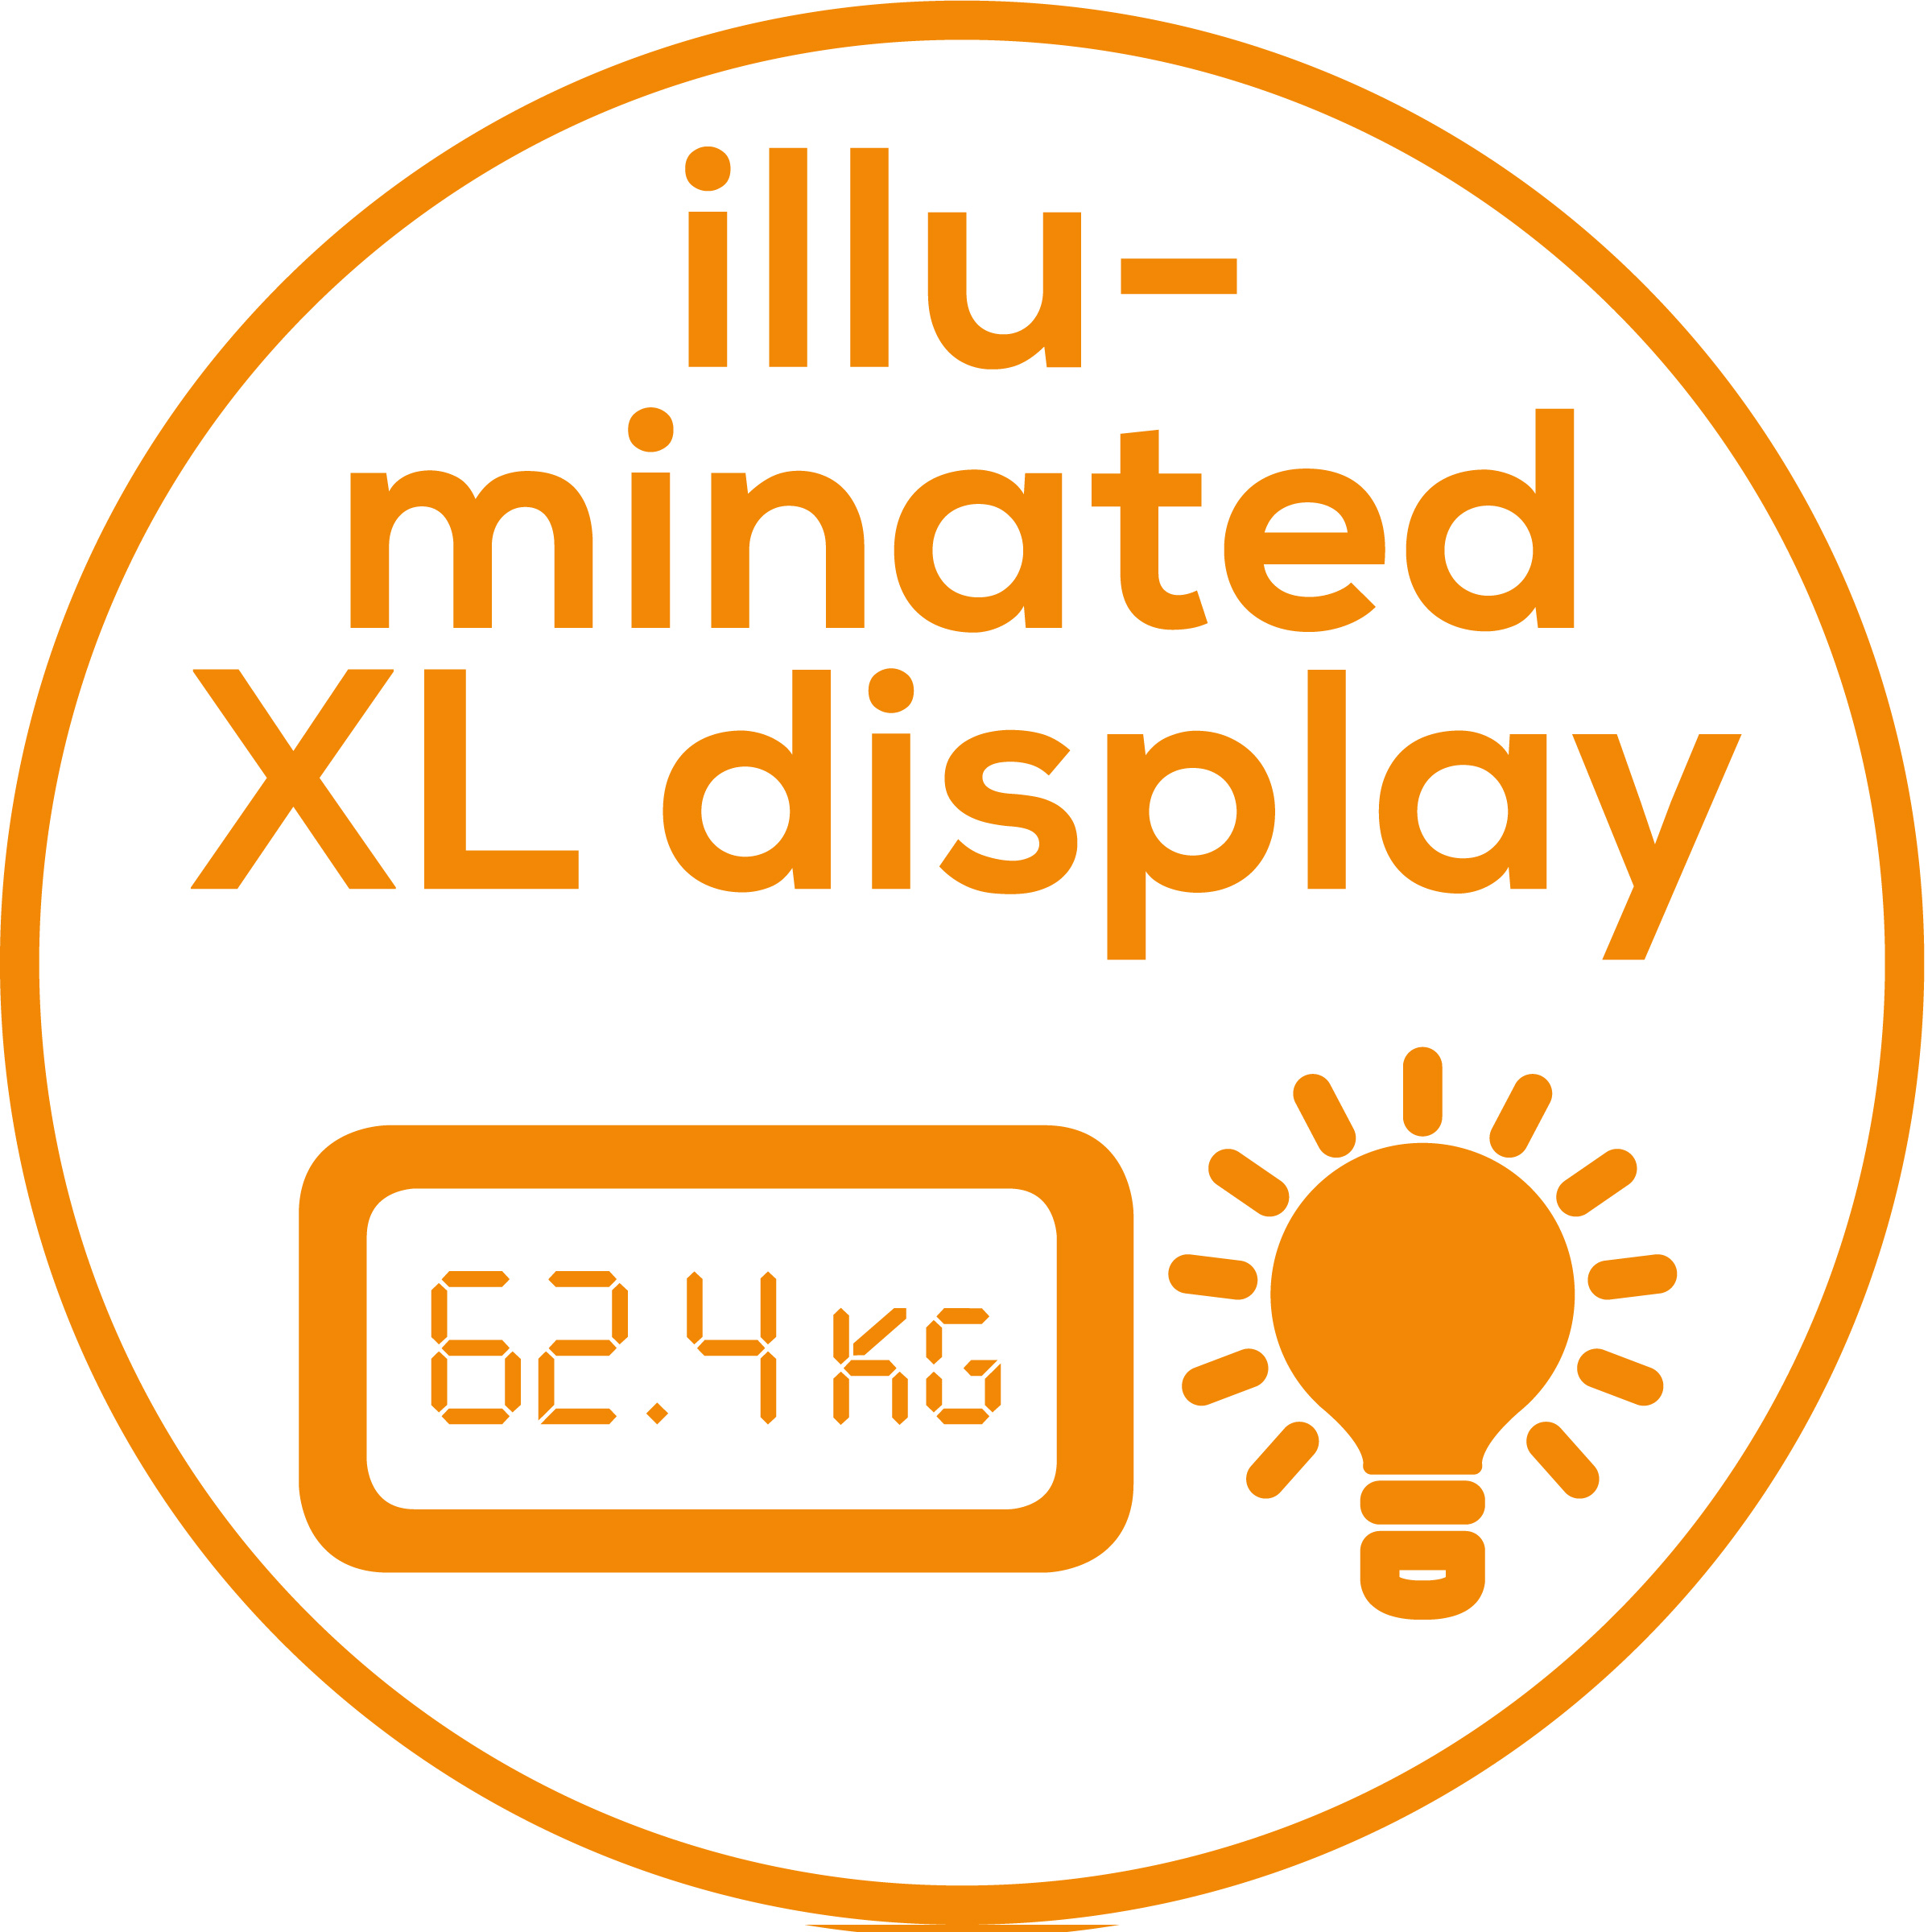 XL display Illuminated, XL display for optimum readability